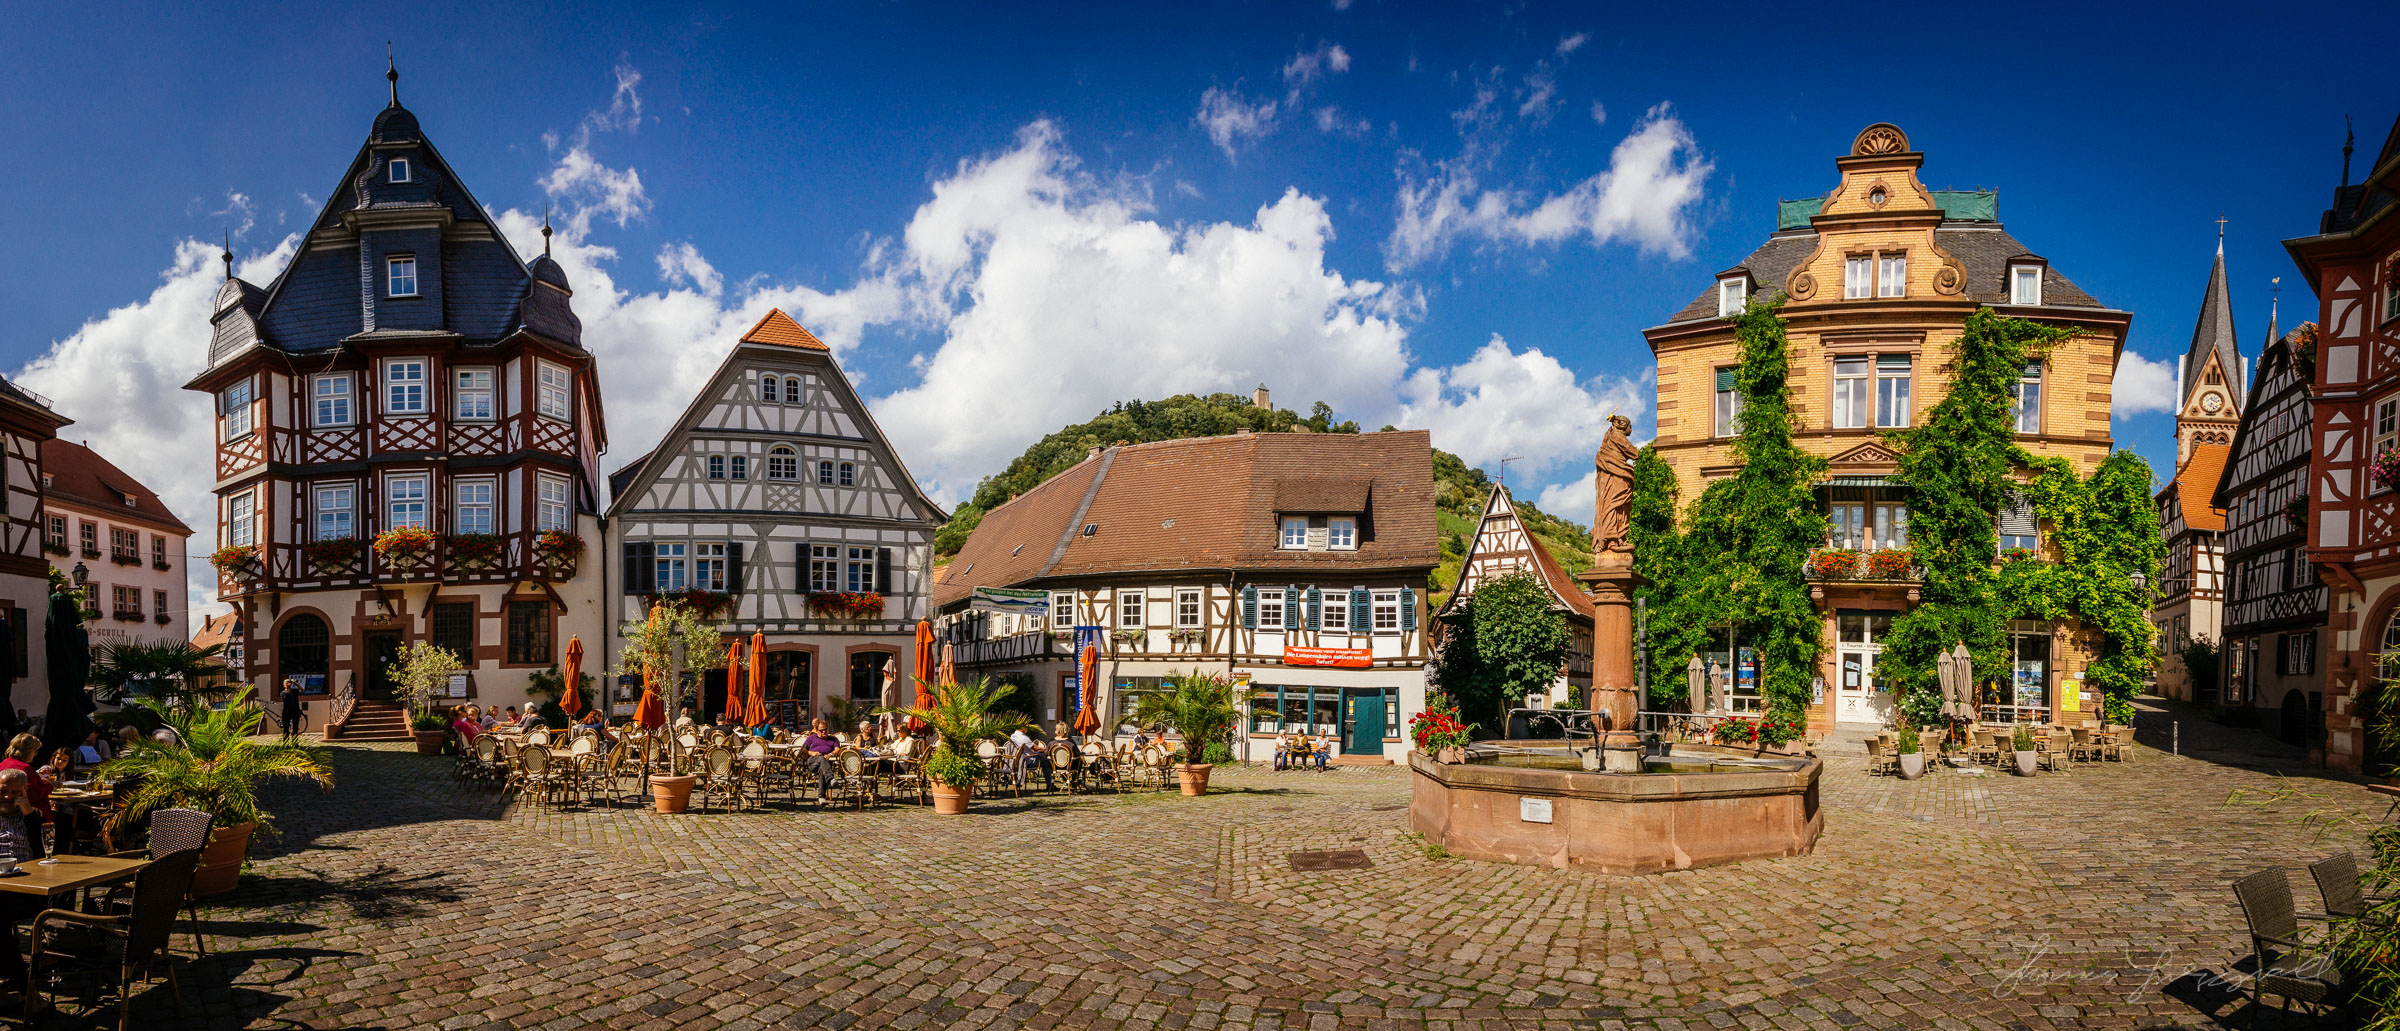 Town Square Panorama, Heppenheim, Germany